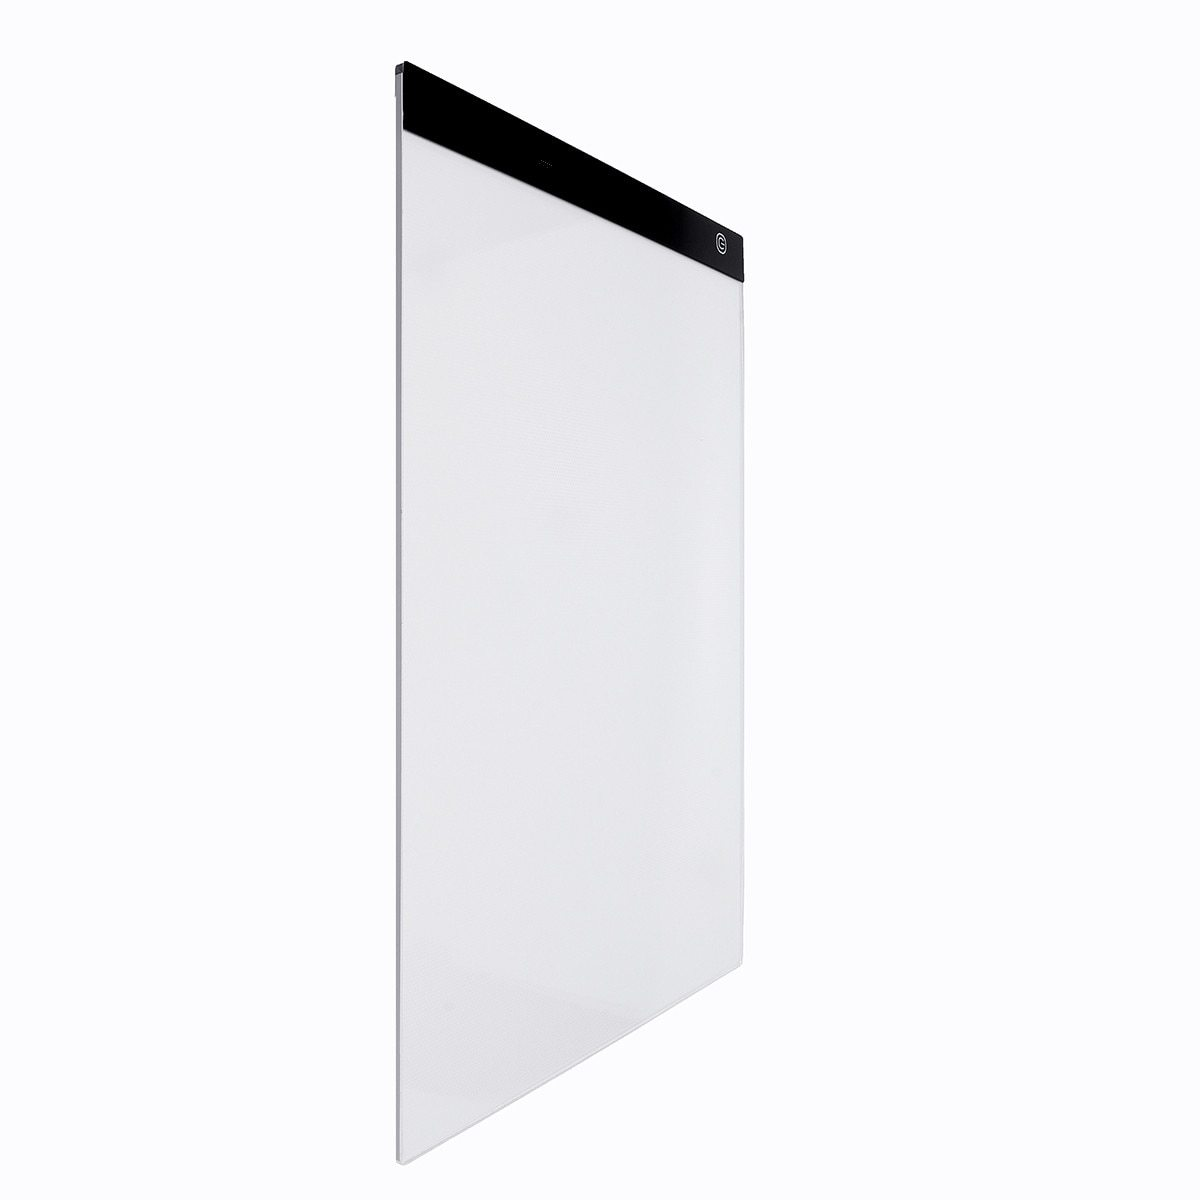 1200x1200 led drawing board led graphic tablet writing painting light box